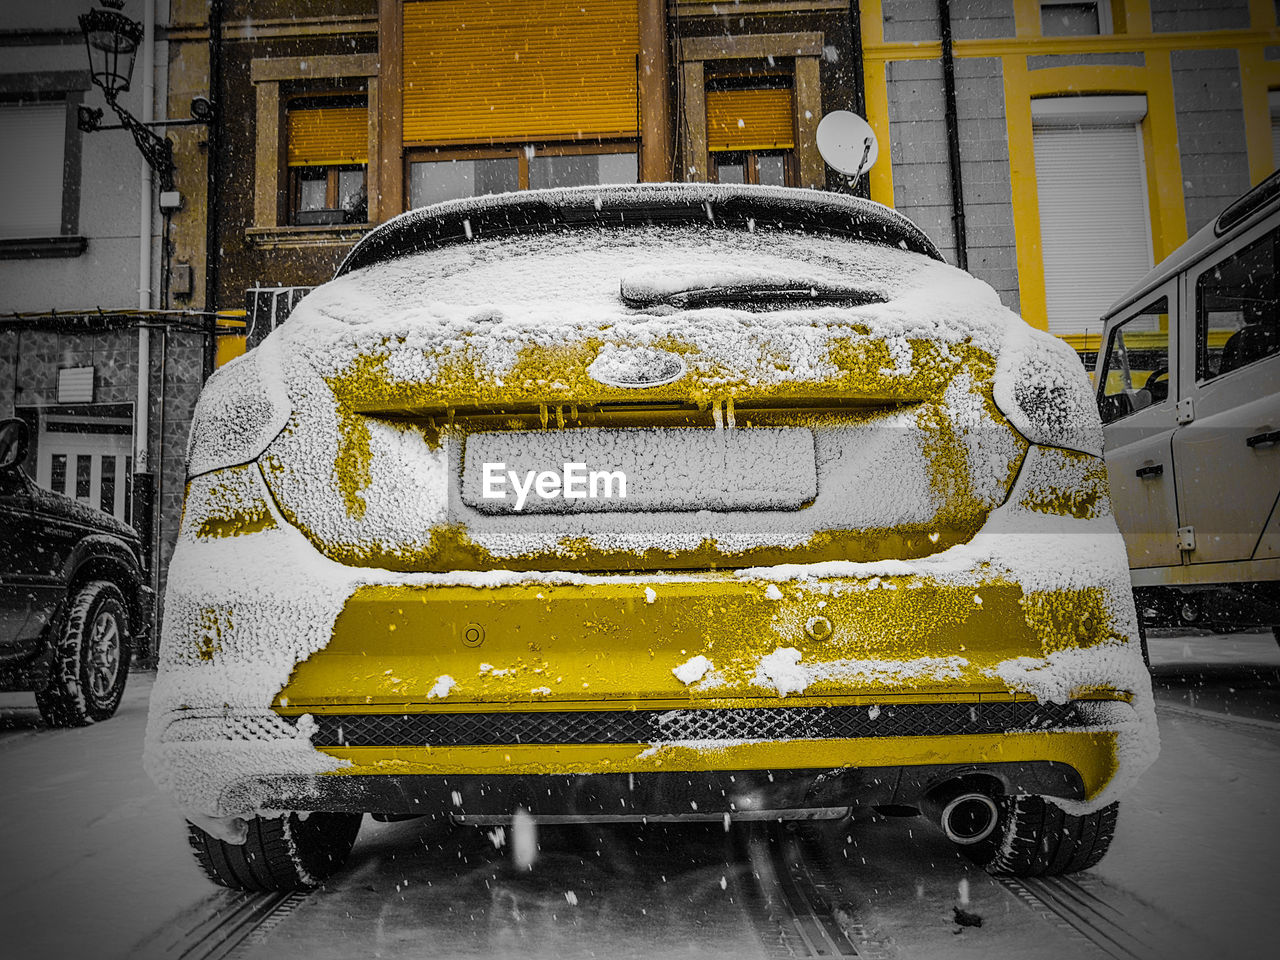 CLOSE-UP OF YELLOW CAR ON SNOW COVERED CARS